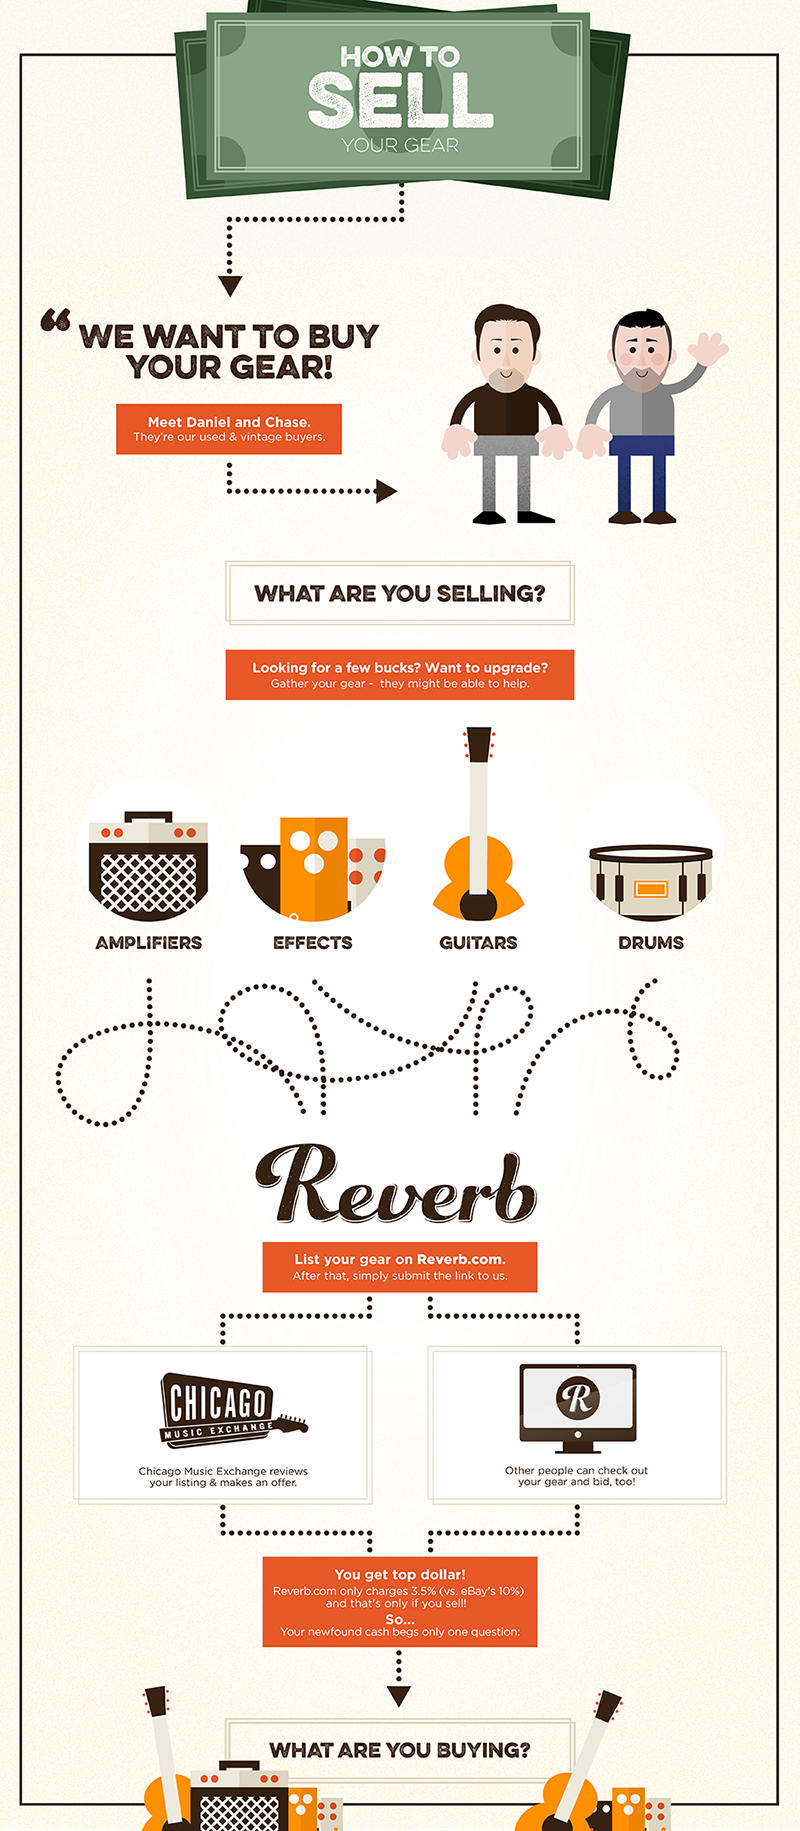 20151016-chicago-music-exchange-reverb-infographic